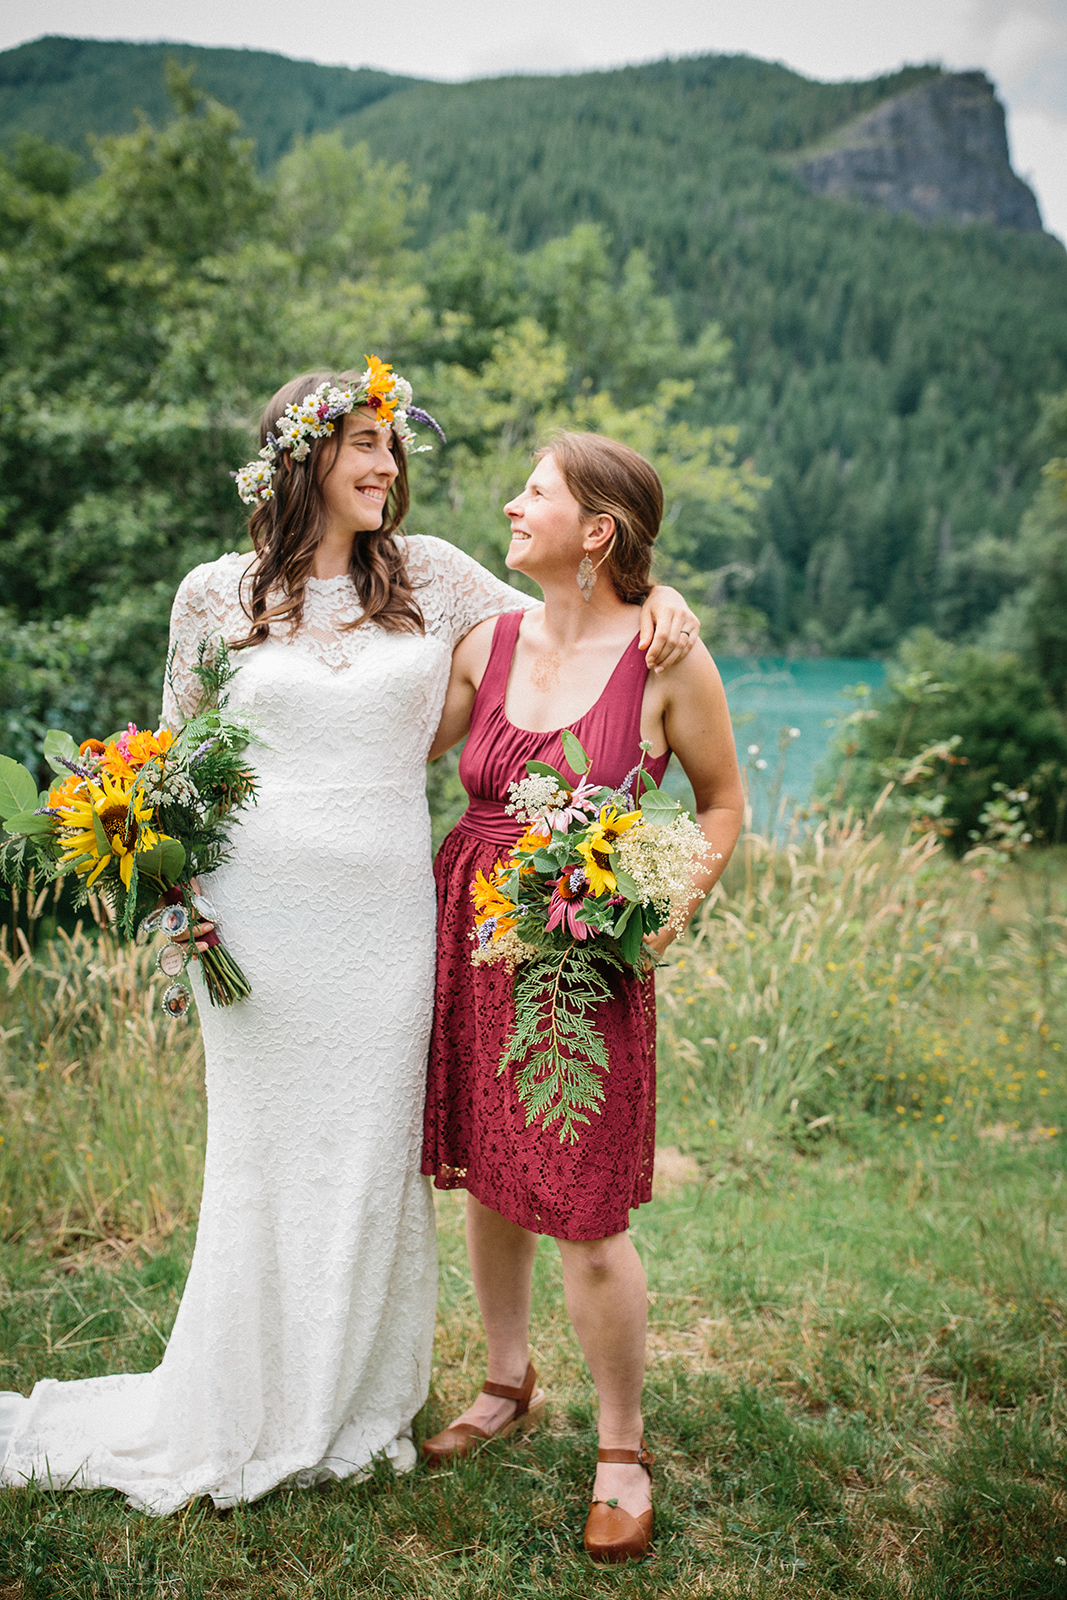 Simply Sweet Boho Chic Wedding at Rattlesnake Lake on Apple Brides